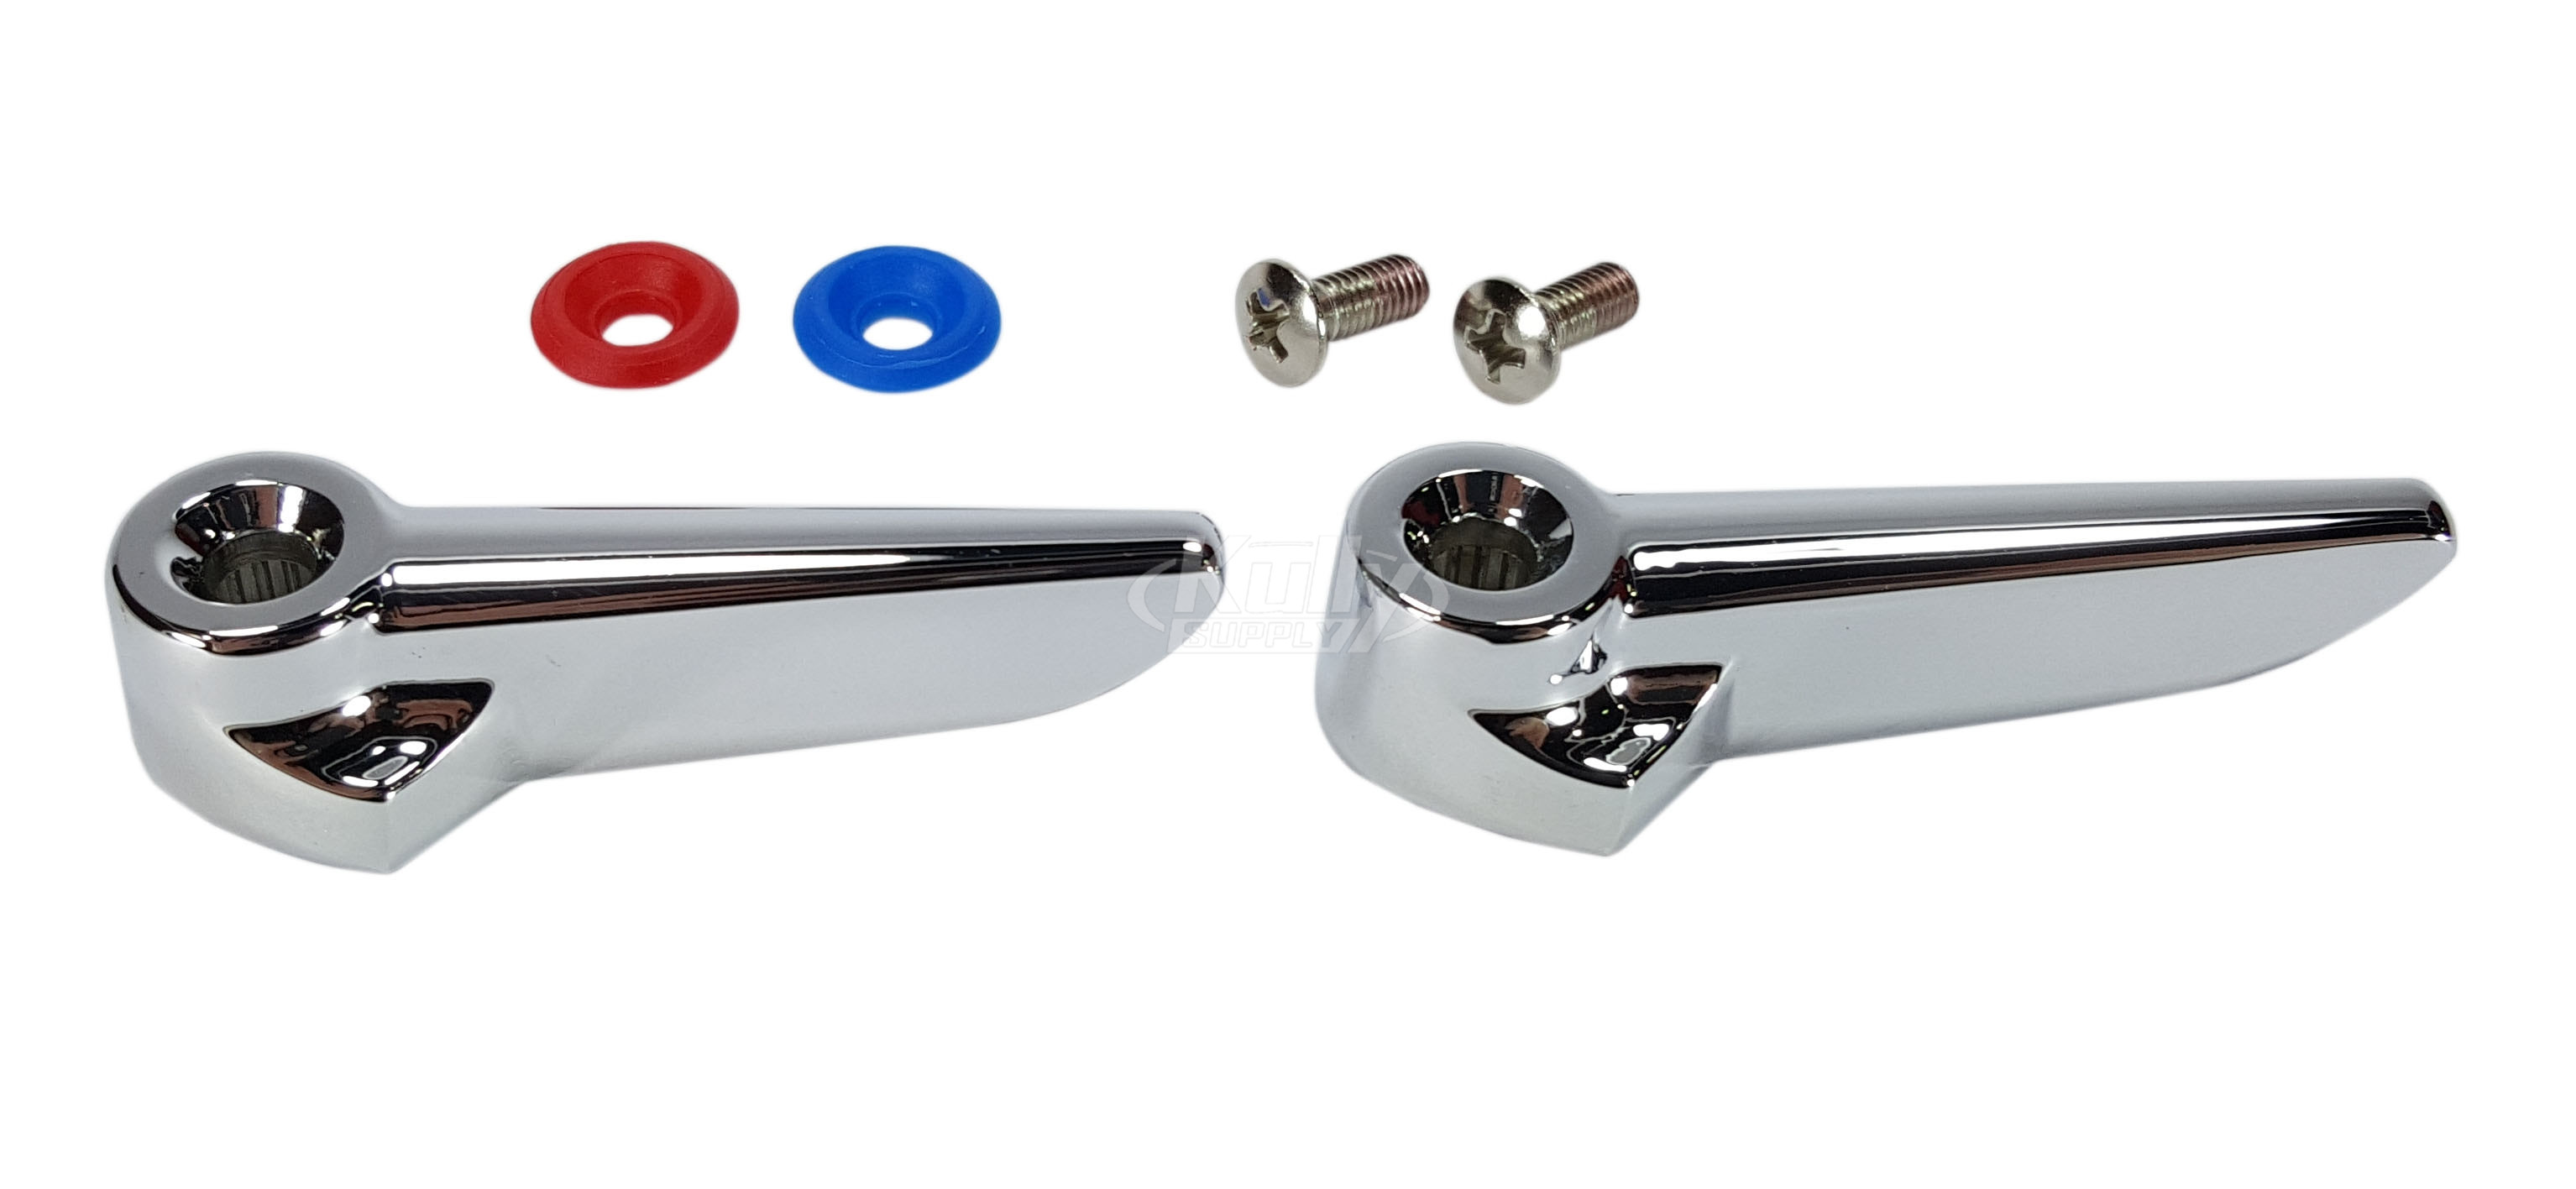 T&S Brass B-9K Parts Kit For Lever Handle | KullySupply.com